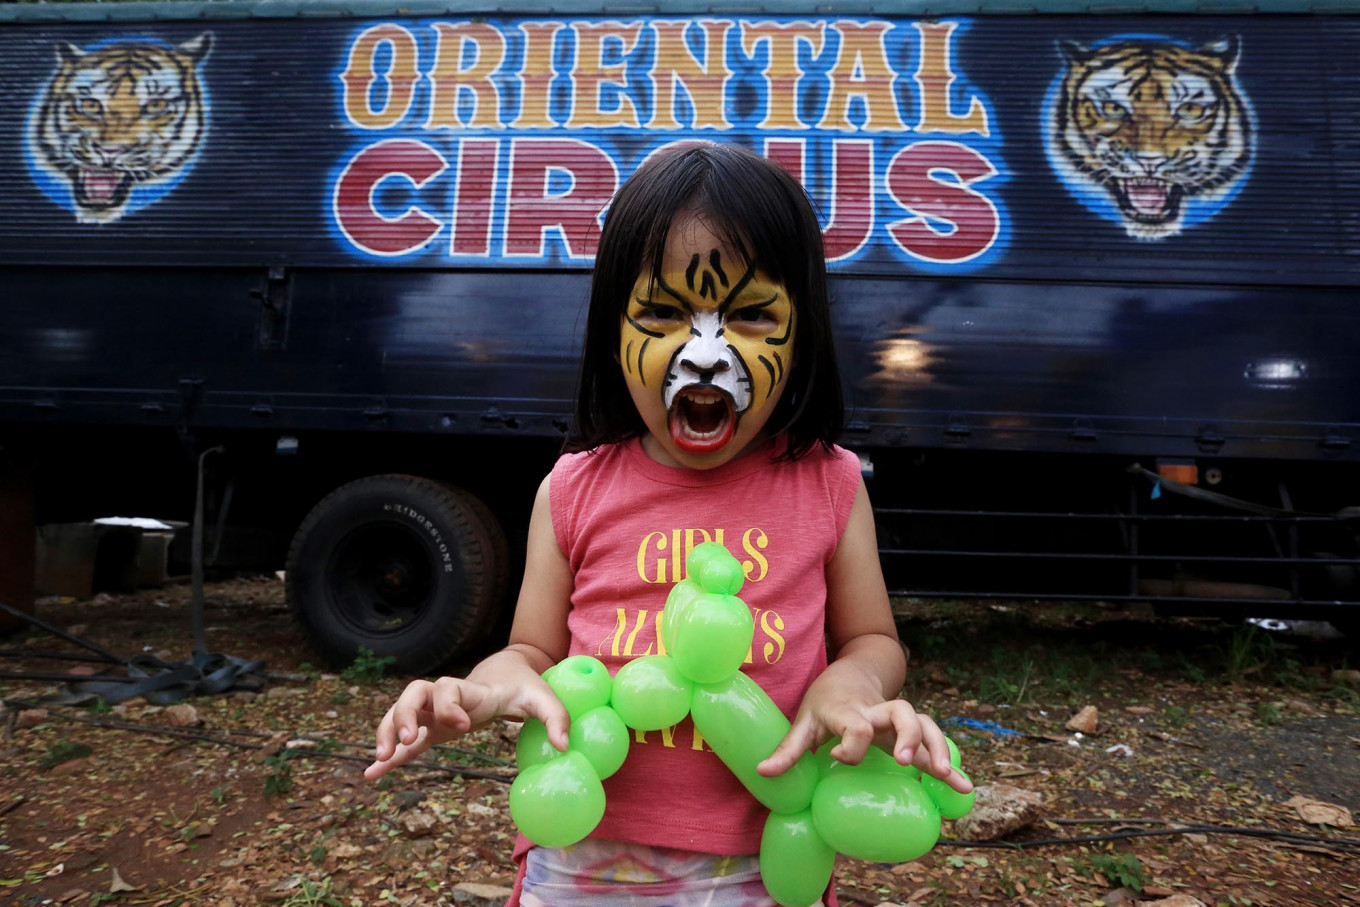 Oriental Circus Indonesia still going strong